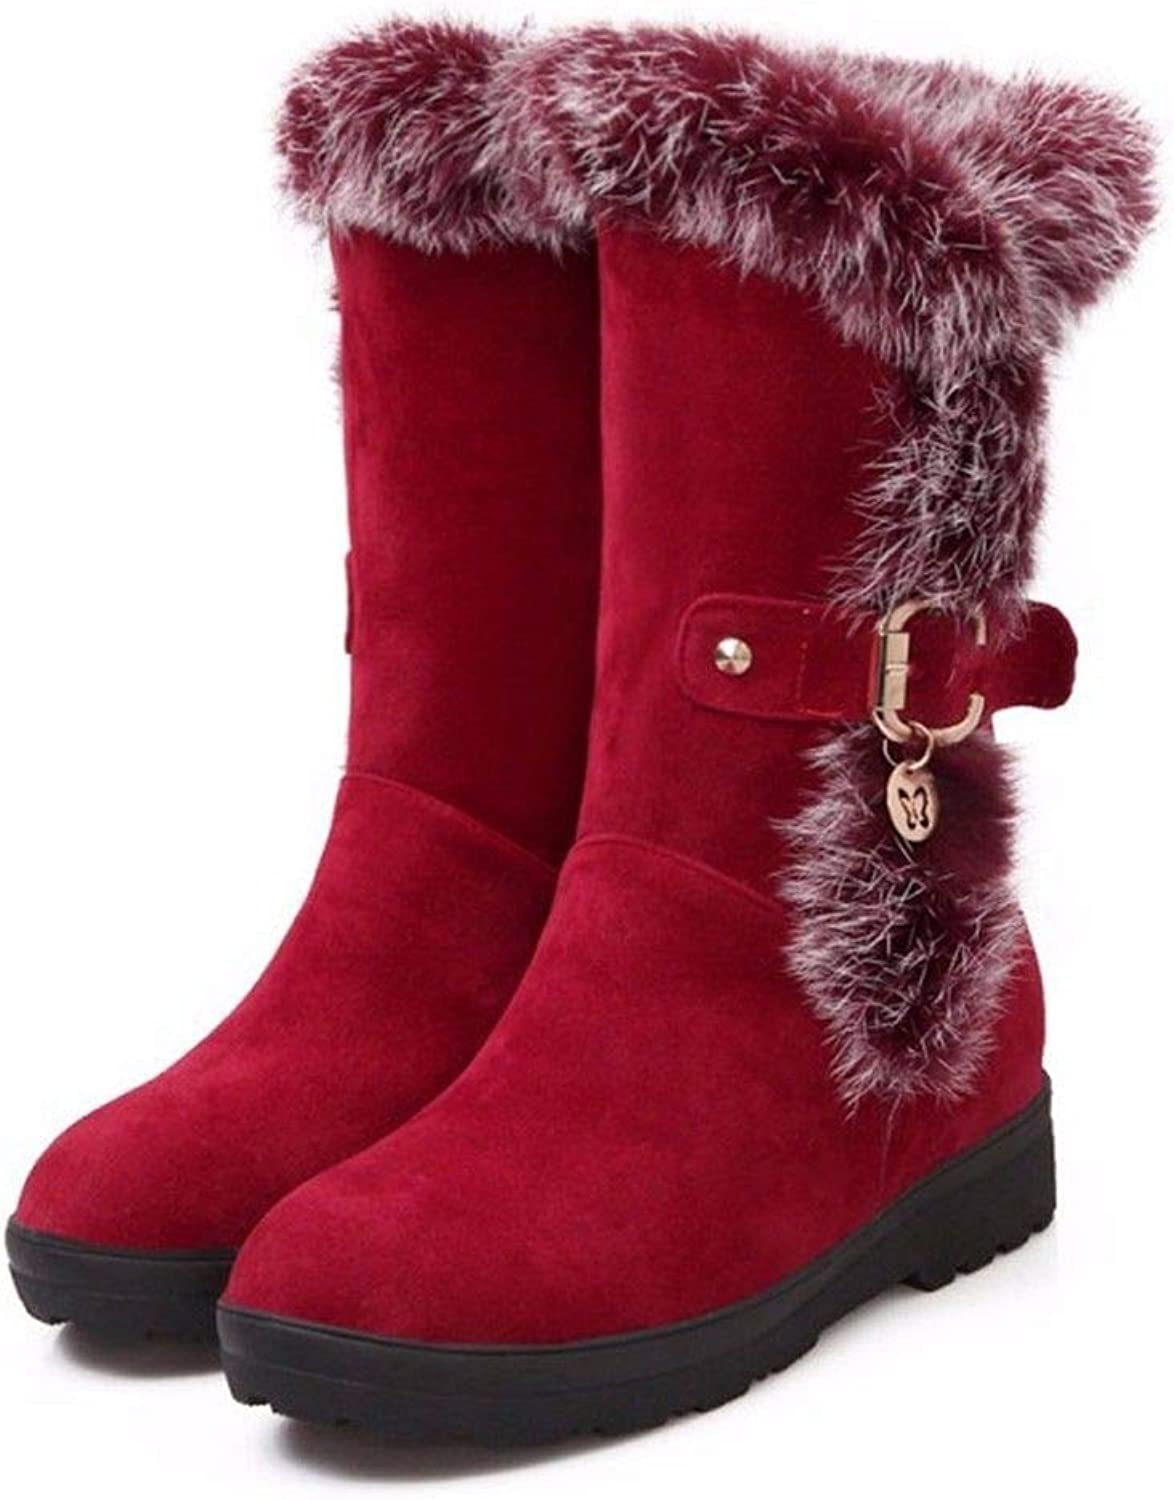 Autumn and Winter Leisure Square Head with Suede Boots Boots Size